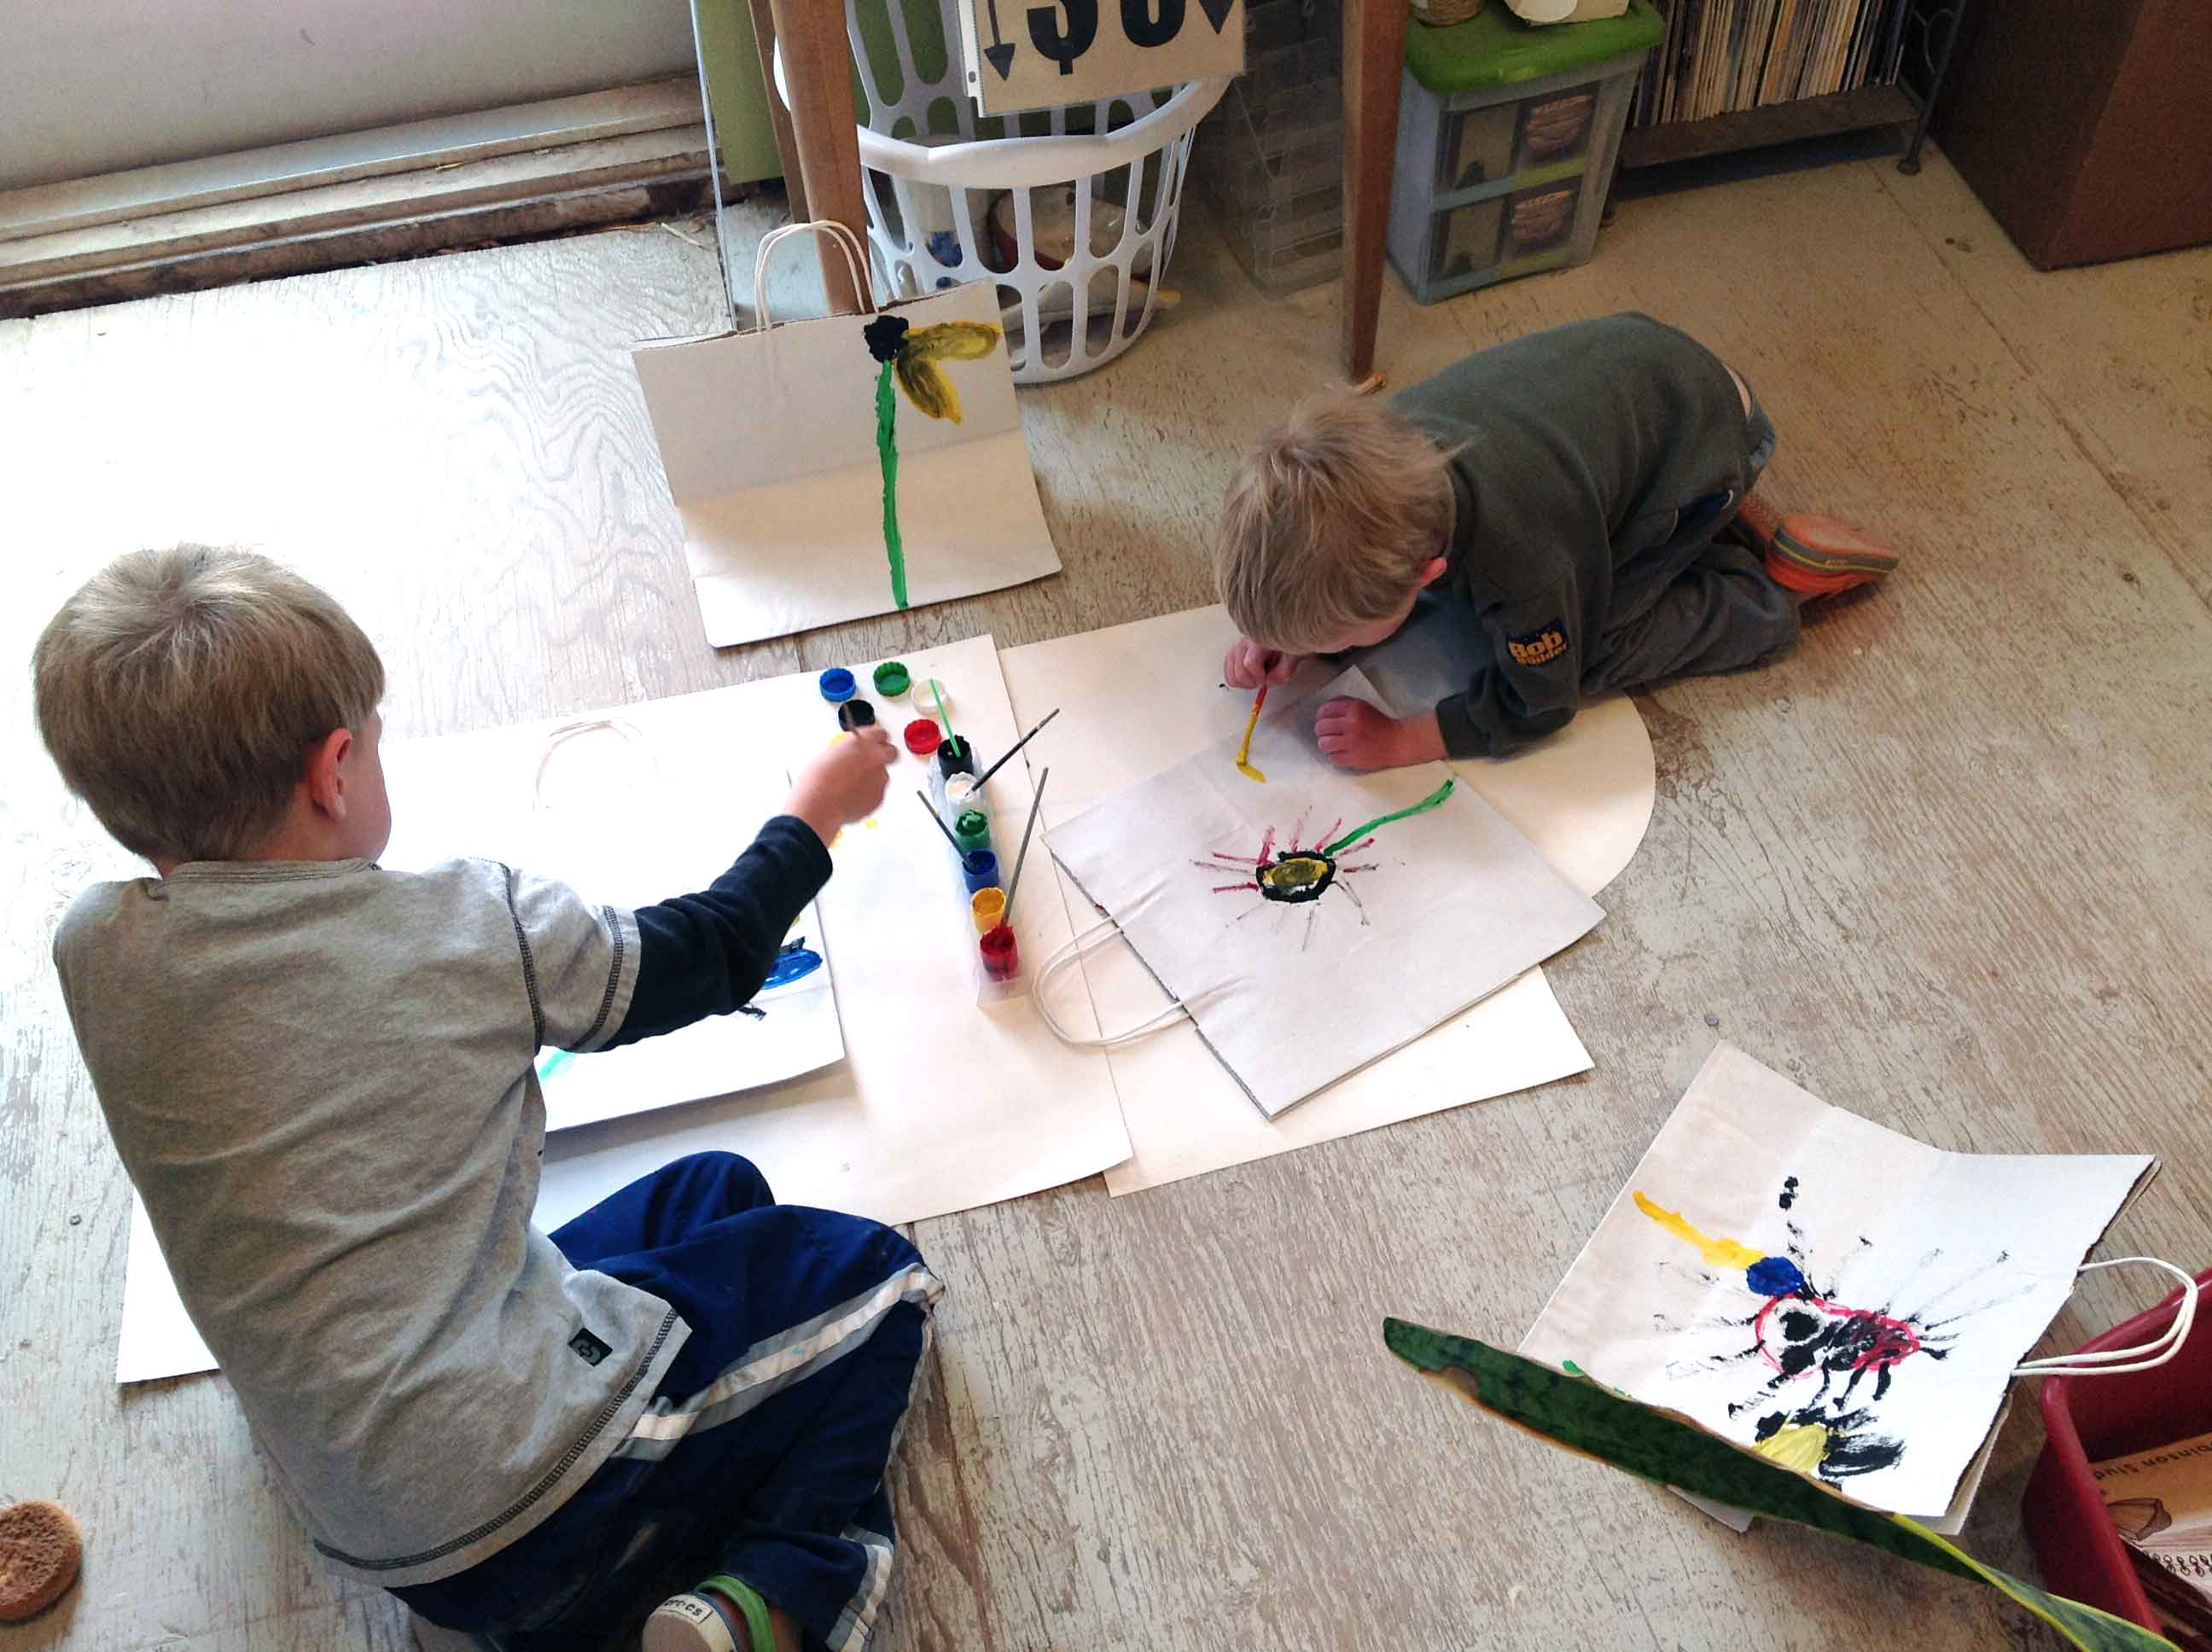 Robinson's kids decorating shopping bags with paints in her studio, 2016.